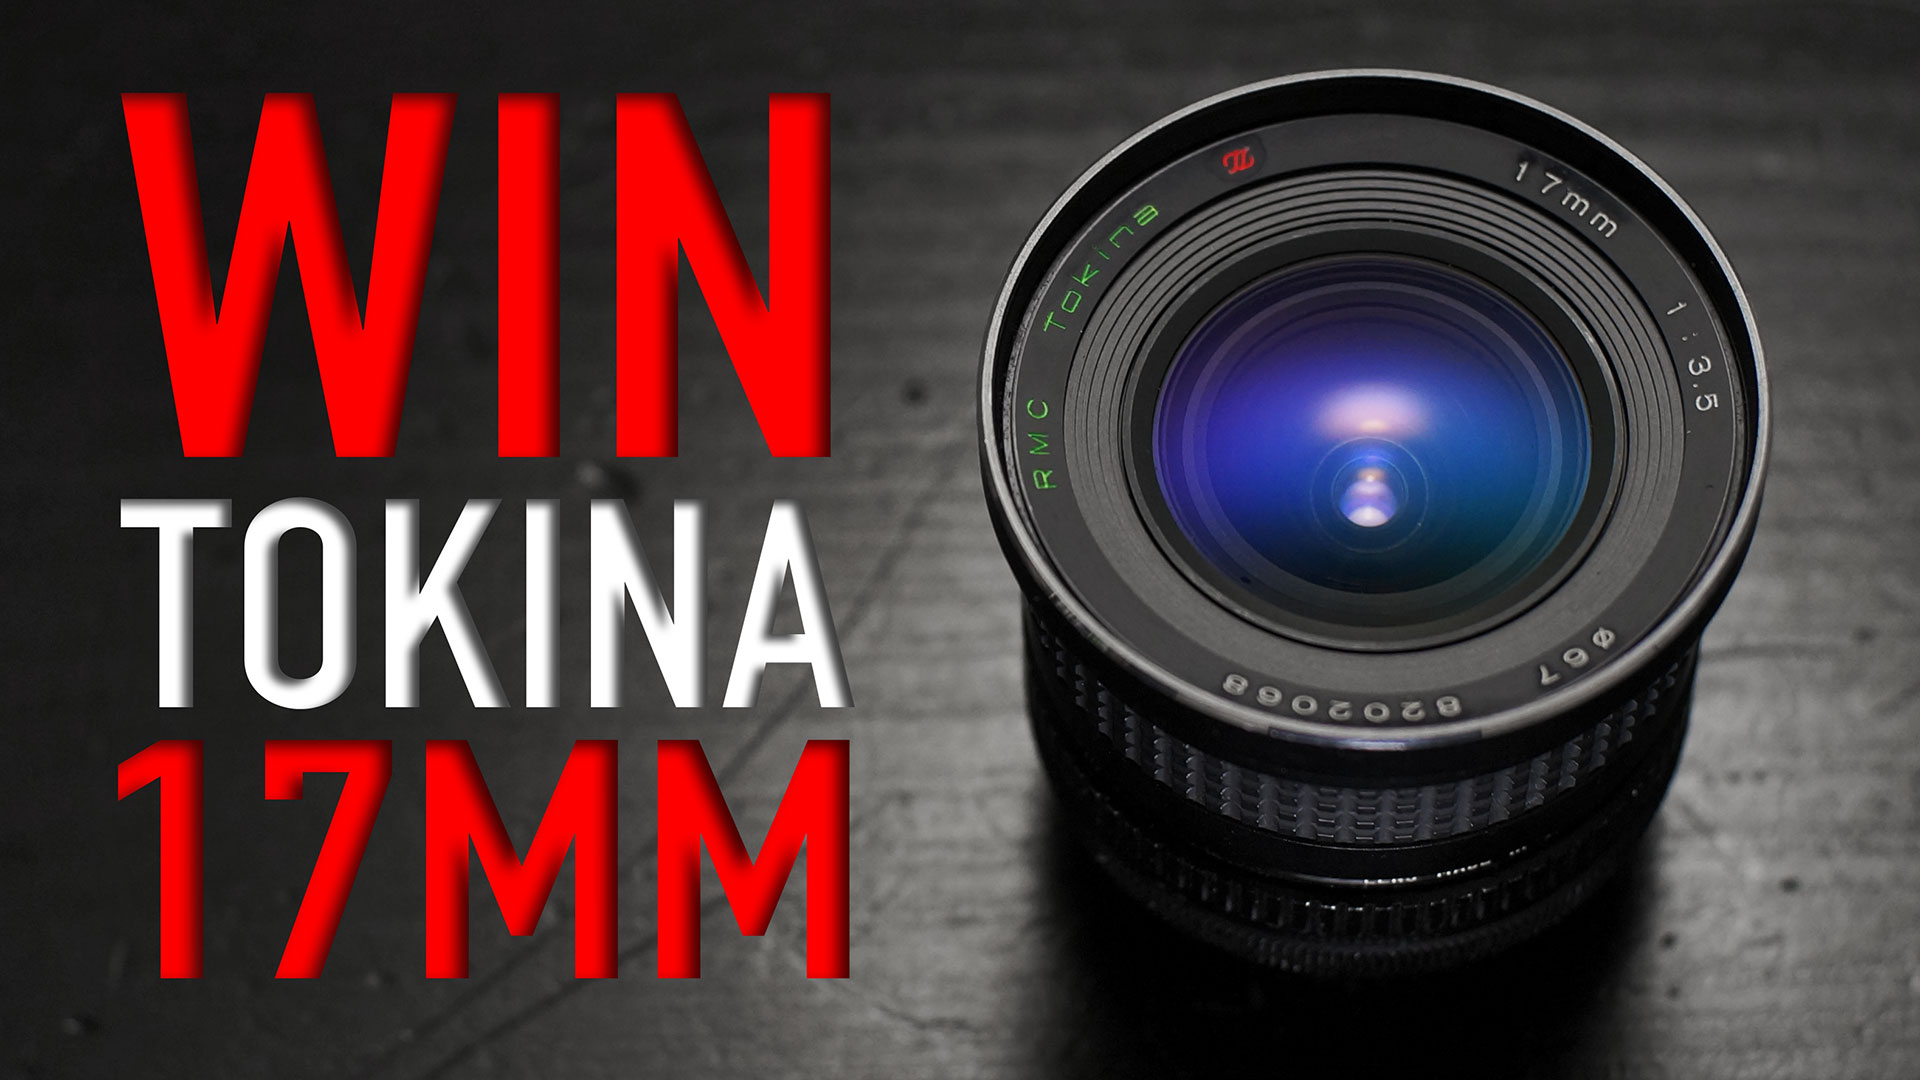 WIN Tokina RMC 17mm F3.5 | Winner Announced